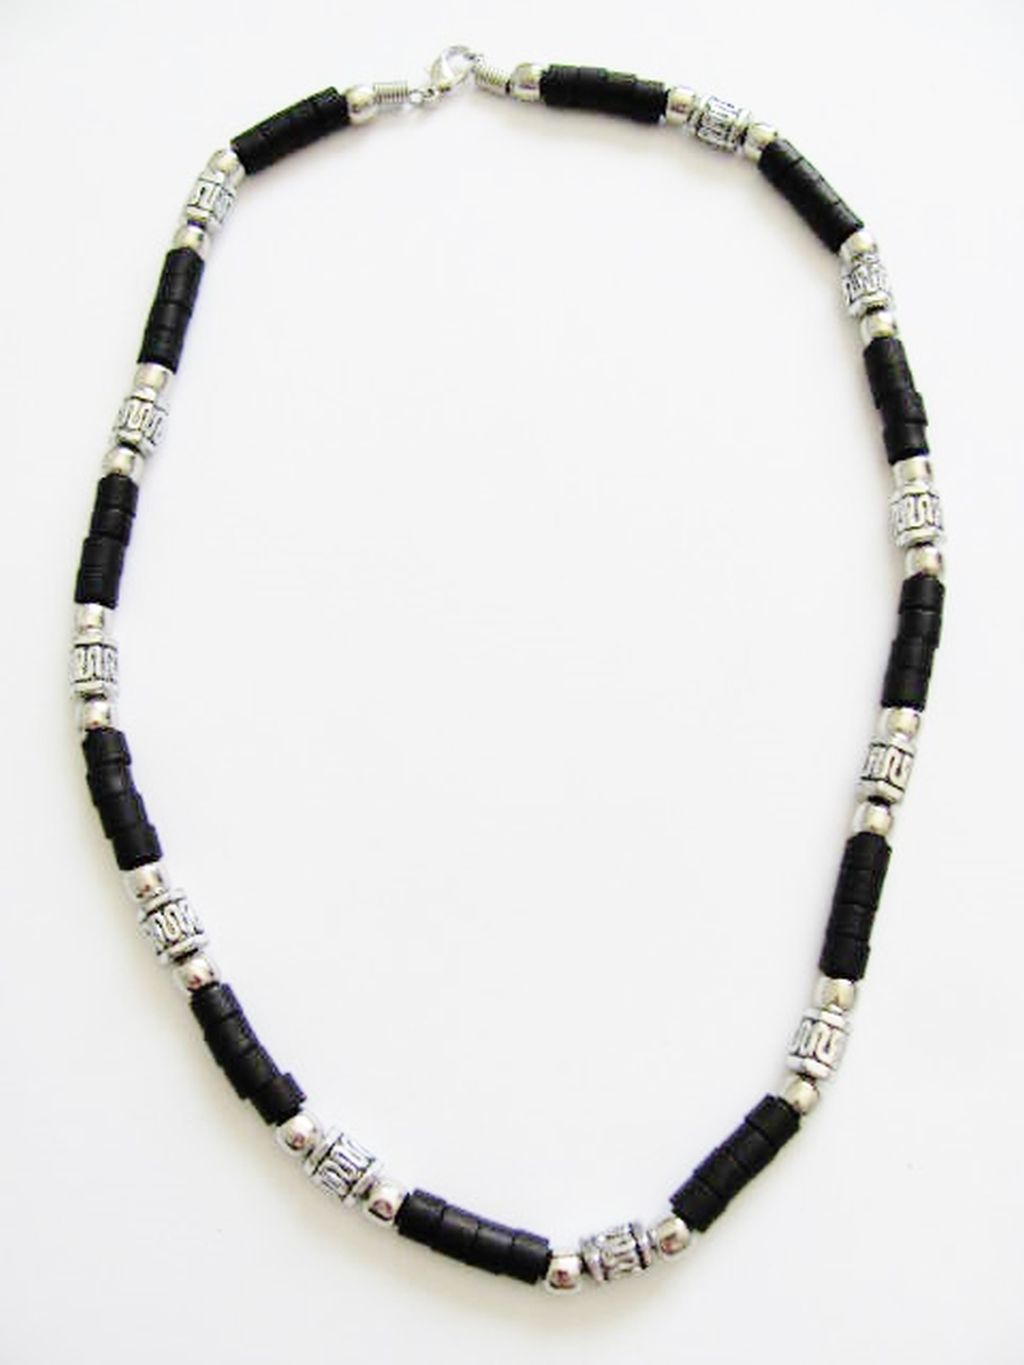 Cancun Hot Chrome/Extreme Brown Men's Bead Necklace, Surfer Style